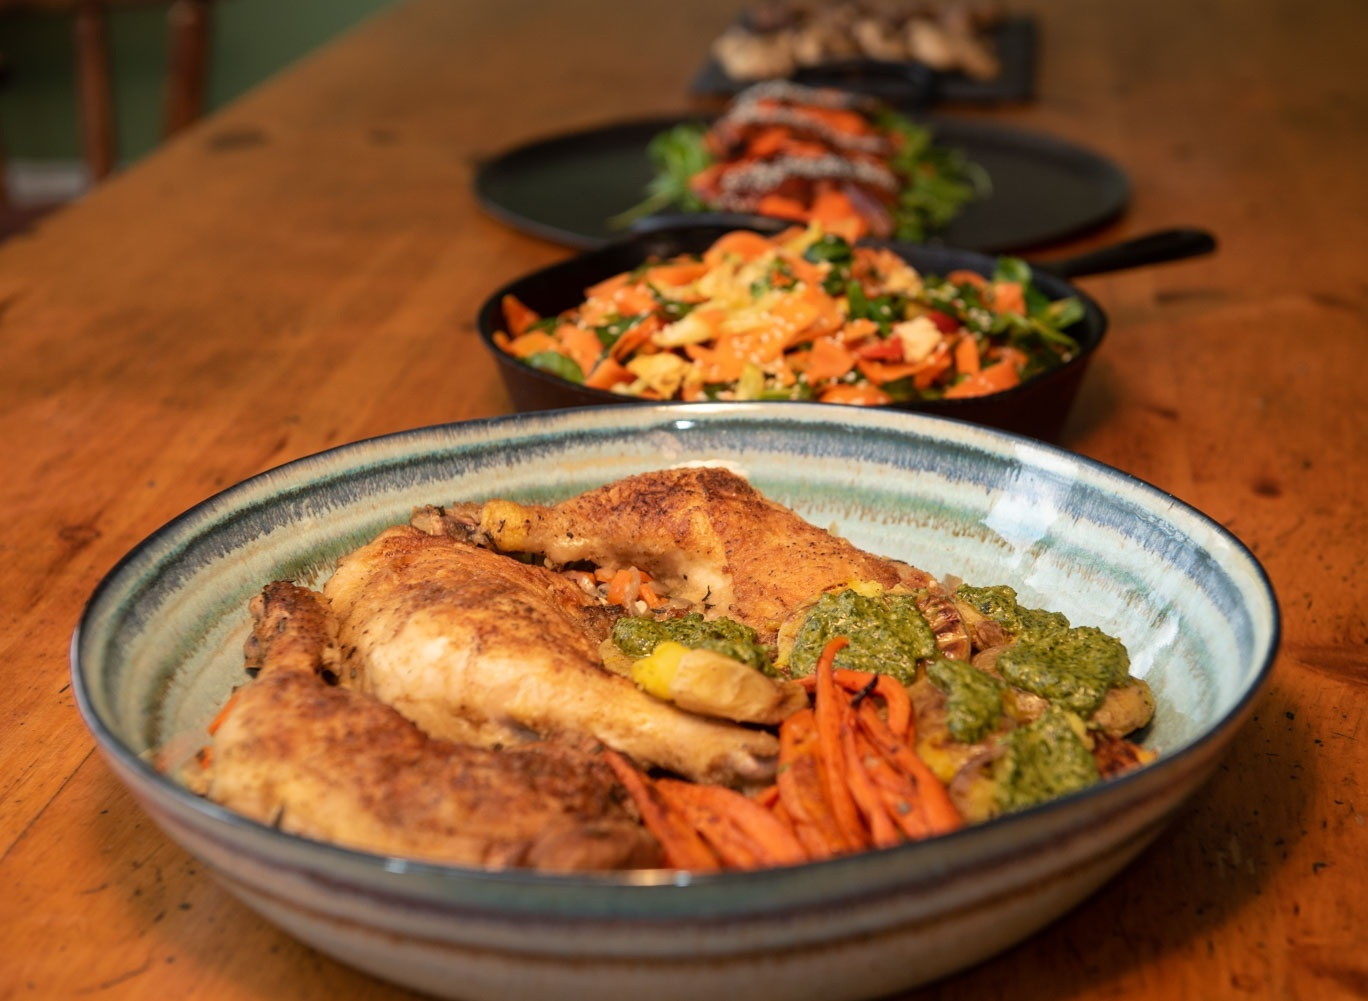 Braised chicken served with pesto-smothered crispy smashed potatoes and roasted carrots